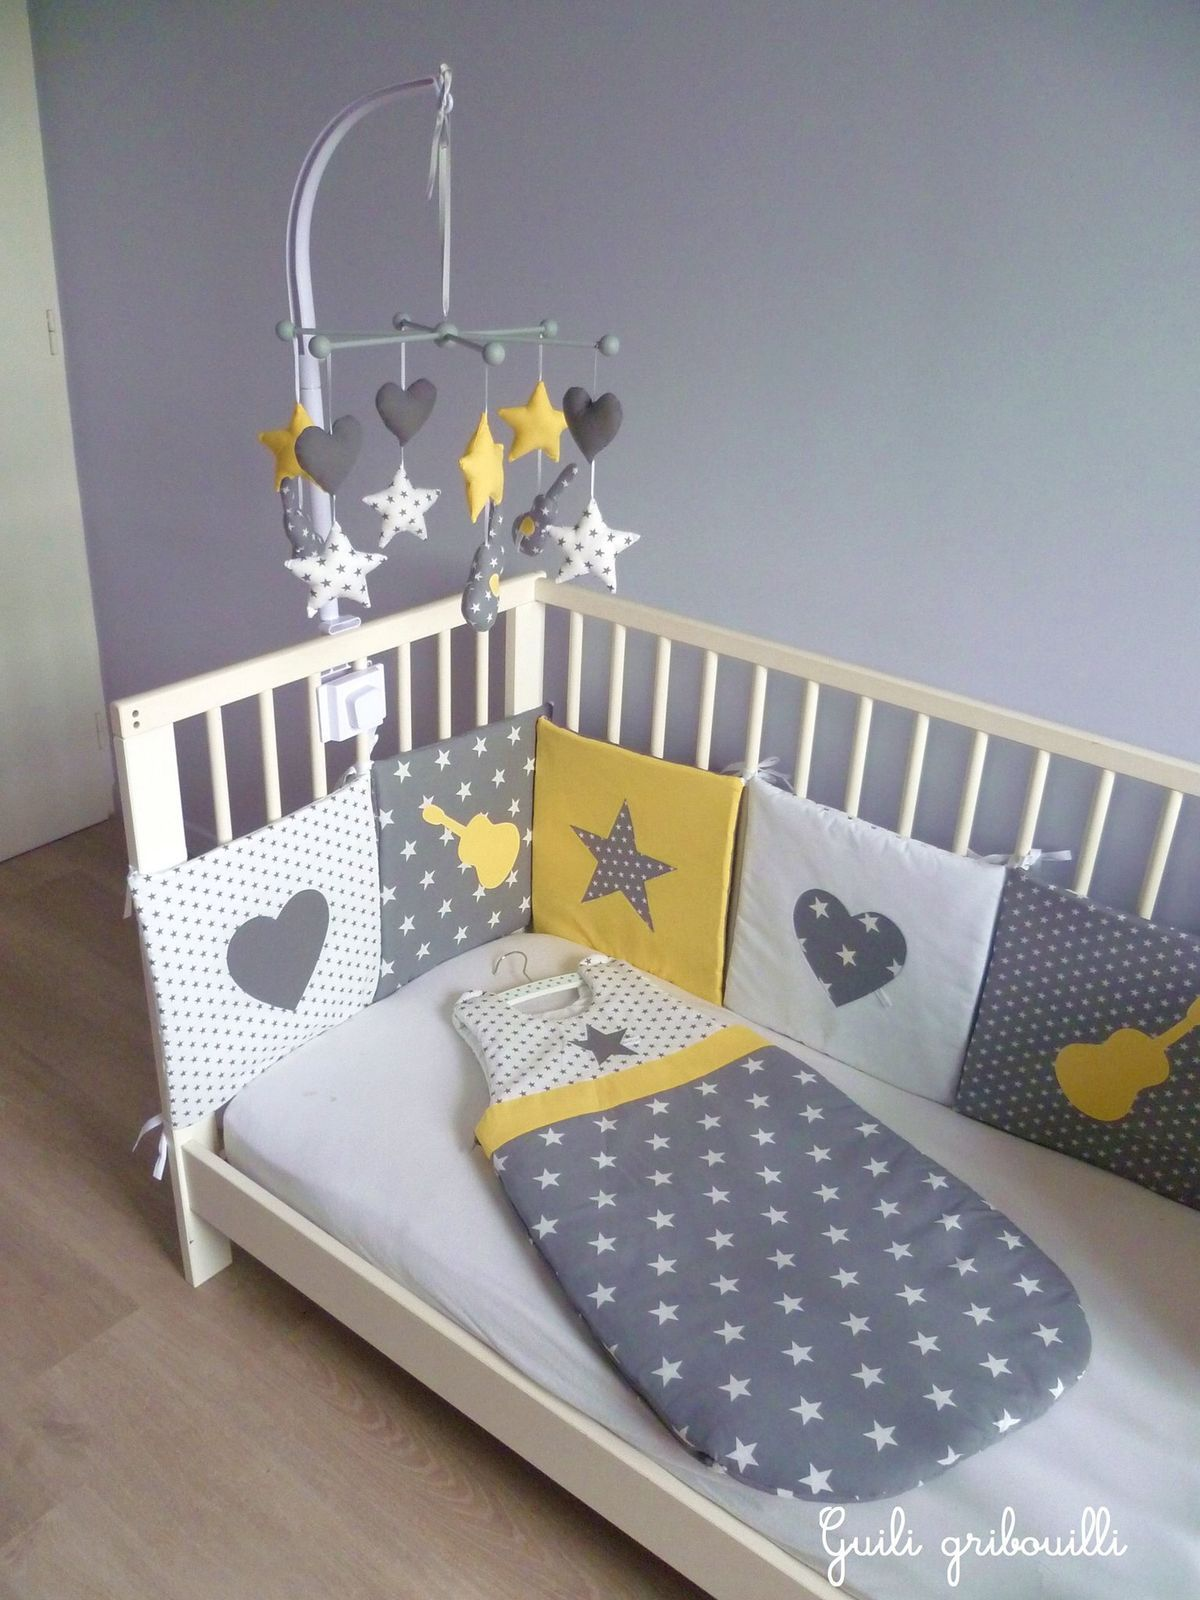 Bettnestchen Baby Baby Nestchen Bettumrandung 210 Cm Design21 Bettnestchen